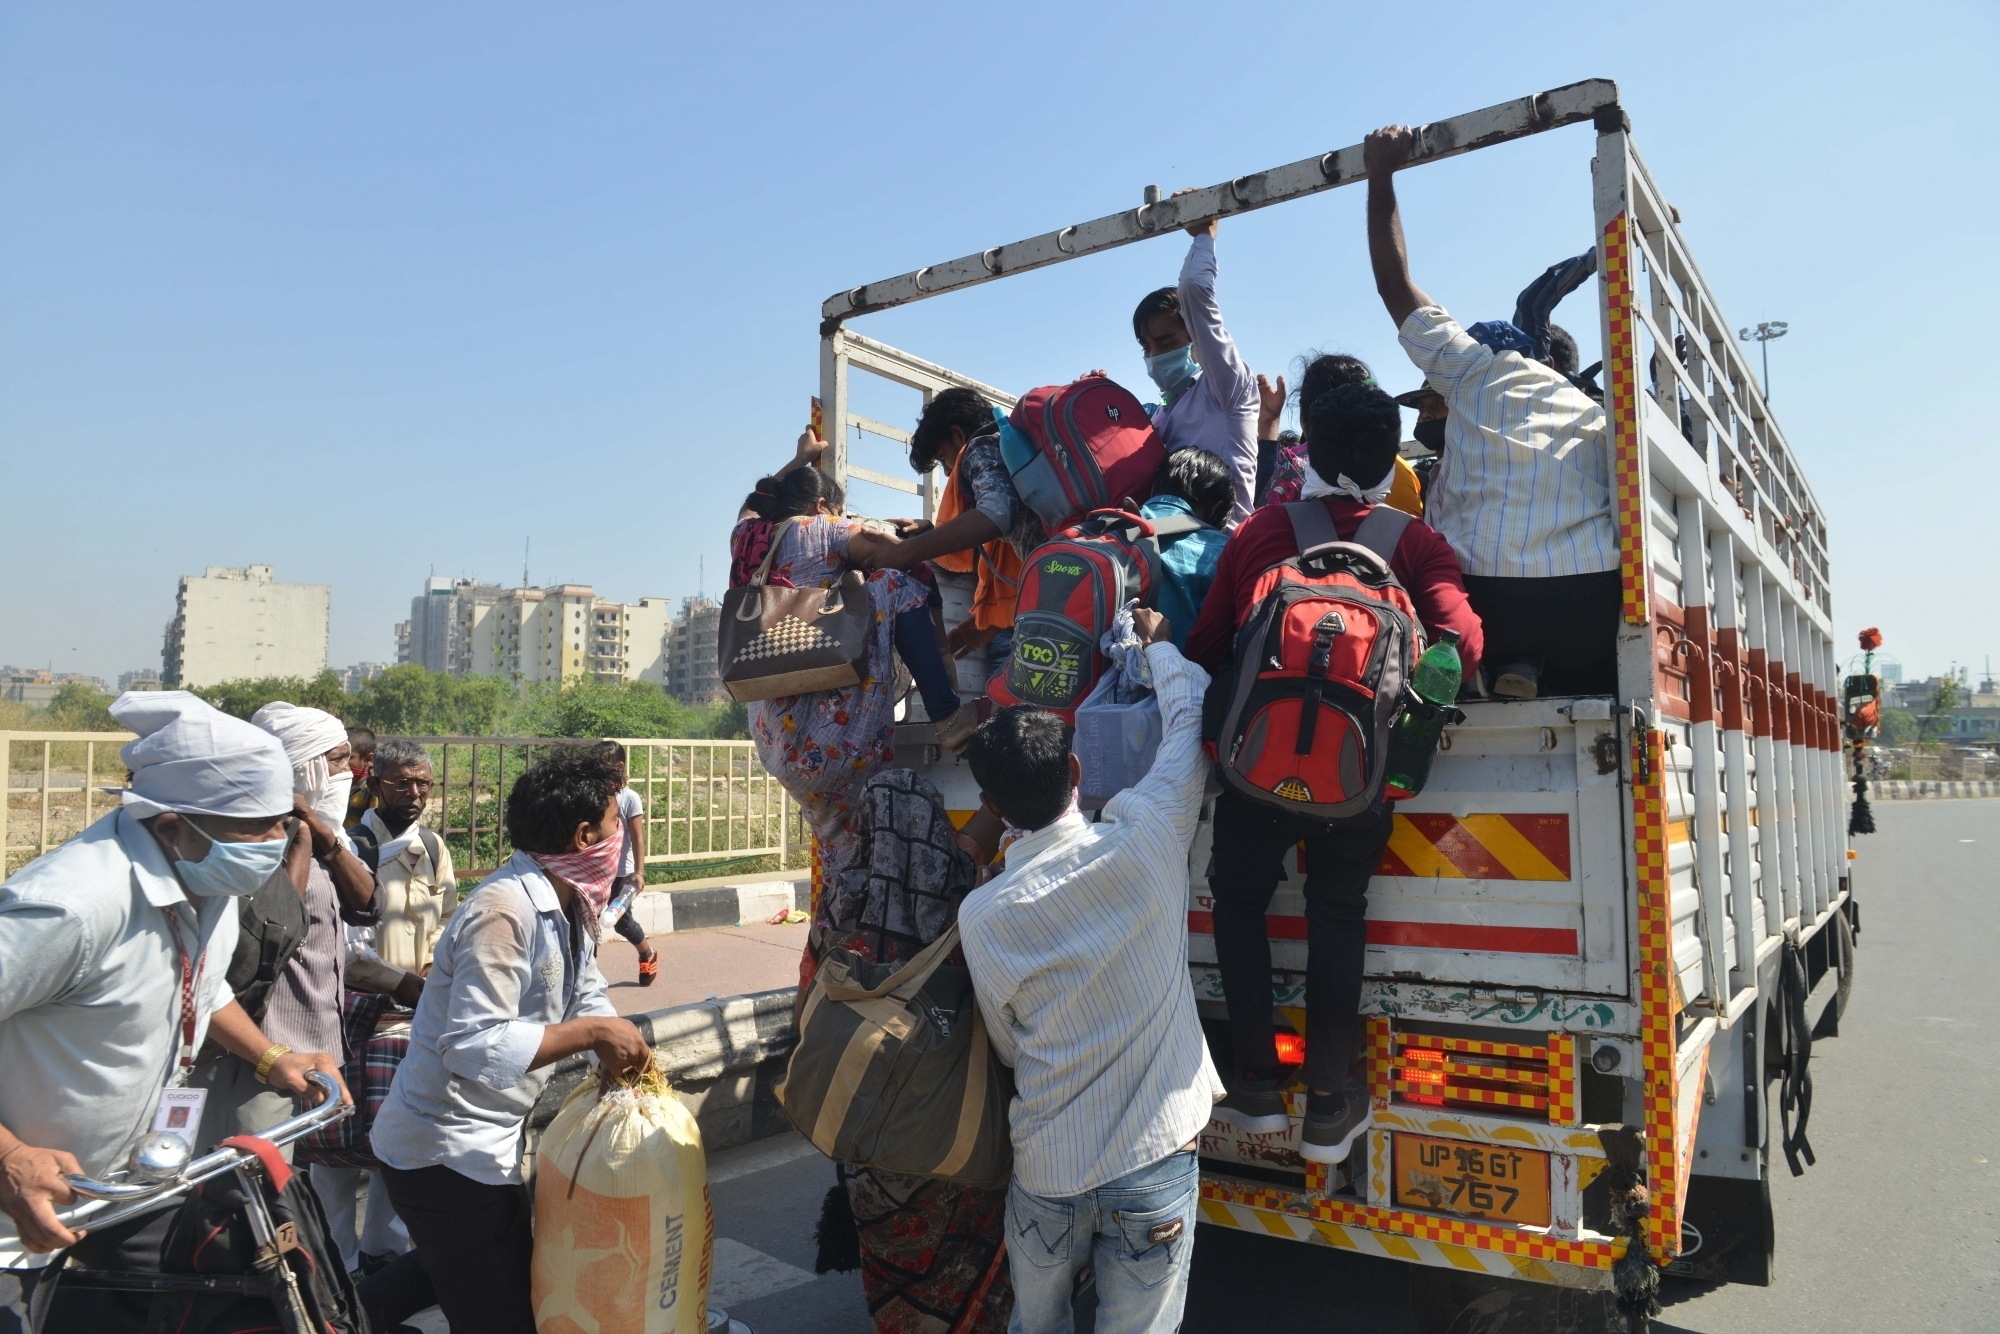 Noida: Migrant workers board a truck in Delhi-UP Border to reach their native places during the extended nationwide lockdown imposed to mitigate the spread of coronavirus, on May 16, 2020. (Photo: IANS)